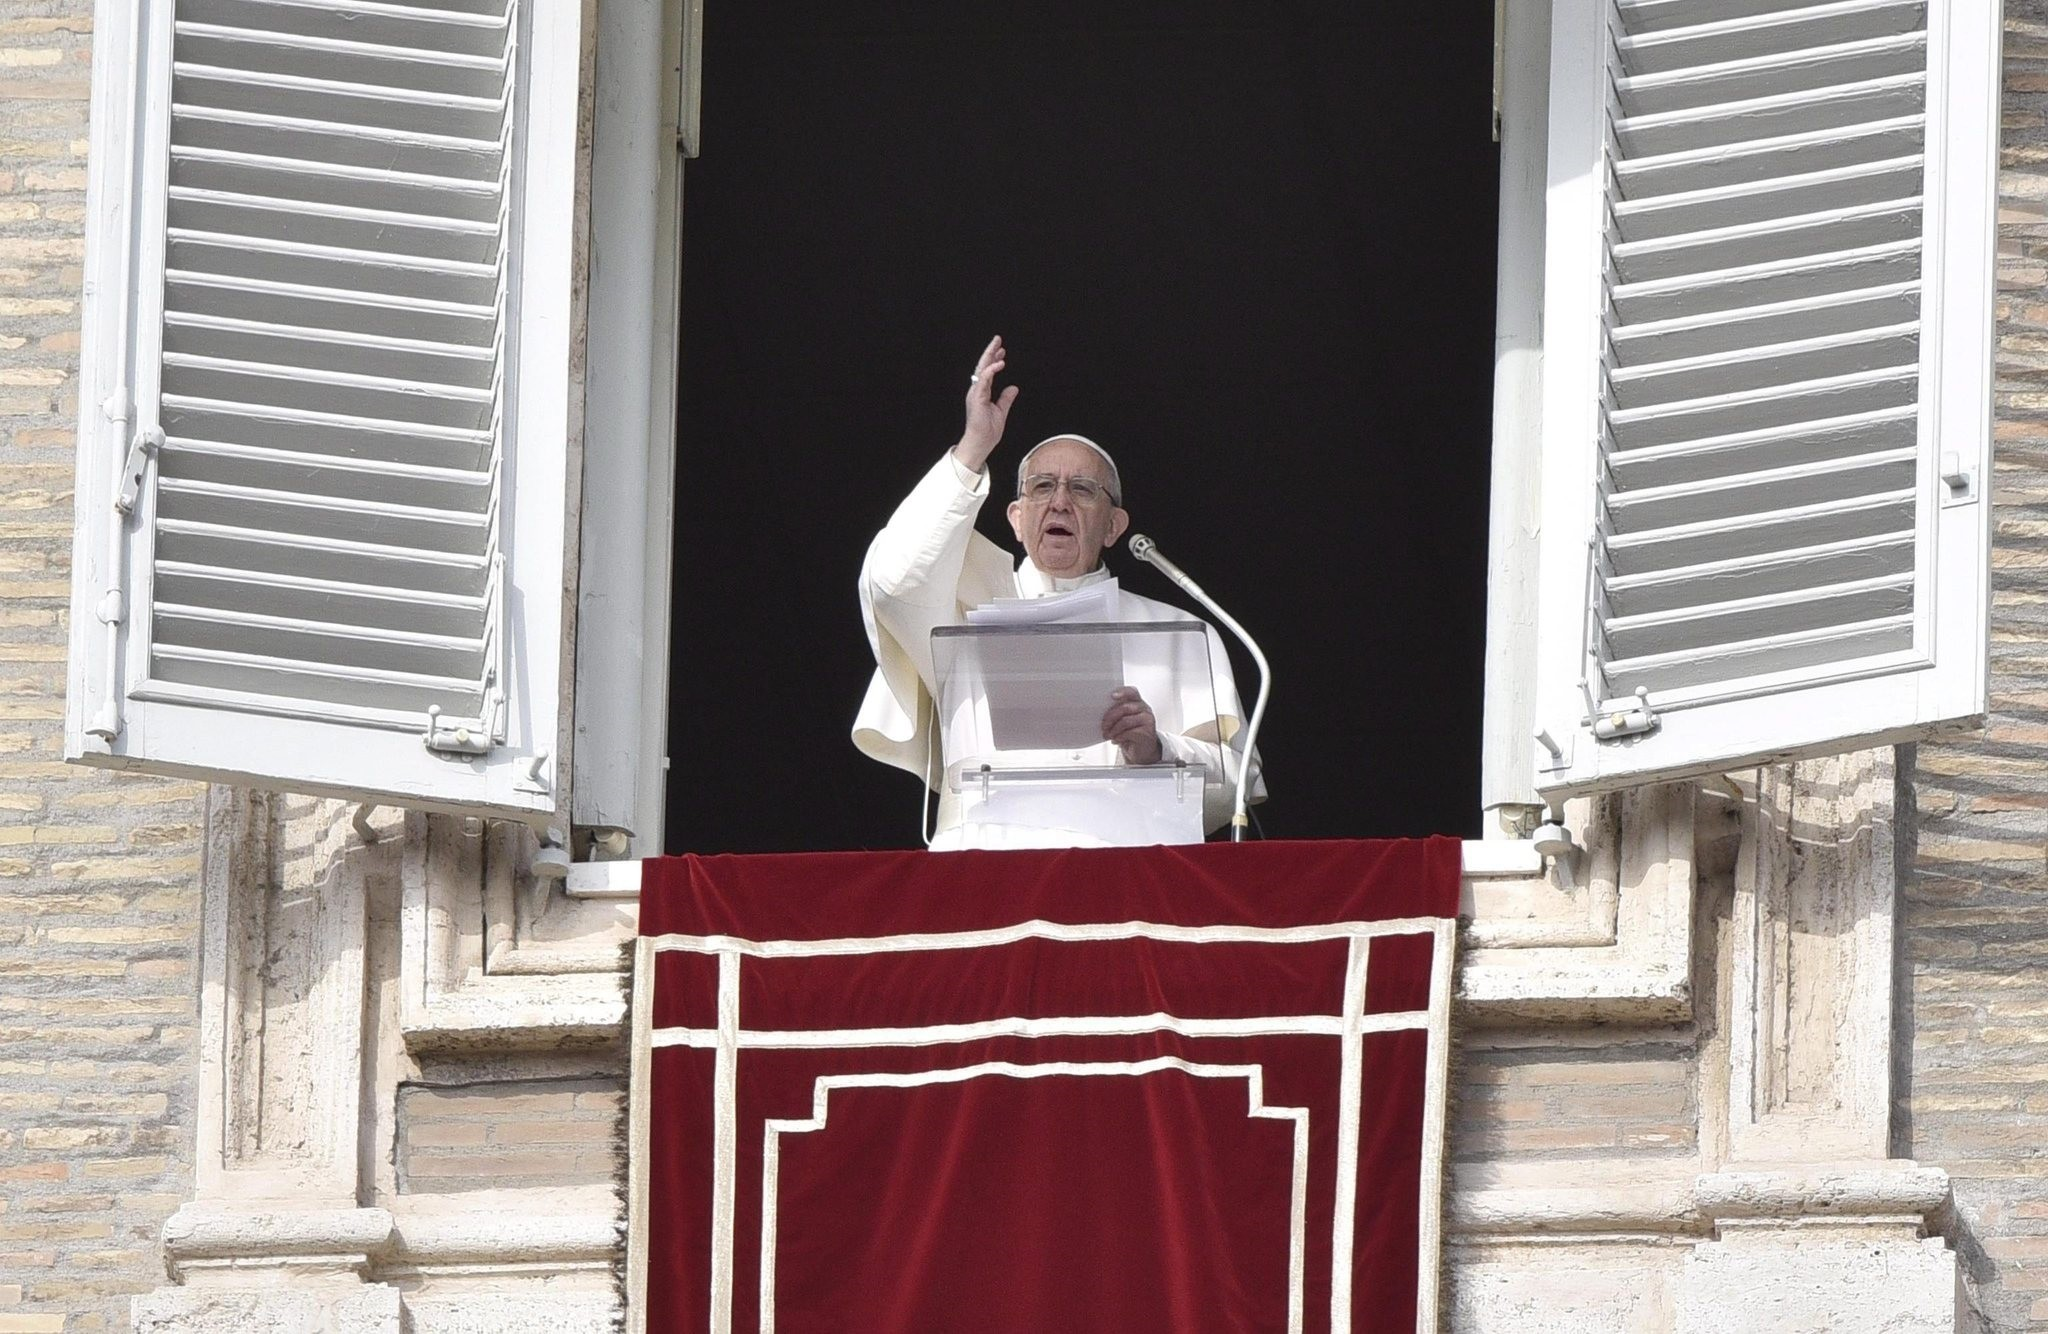 Pope Francis blesses the faithful during the Angelus, traditional Sunday's prayer, in St. Peter's Square, Vatican City, 22 January 2017. (EPA Photo)